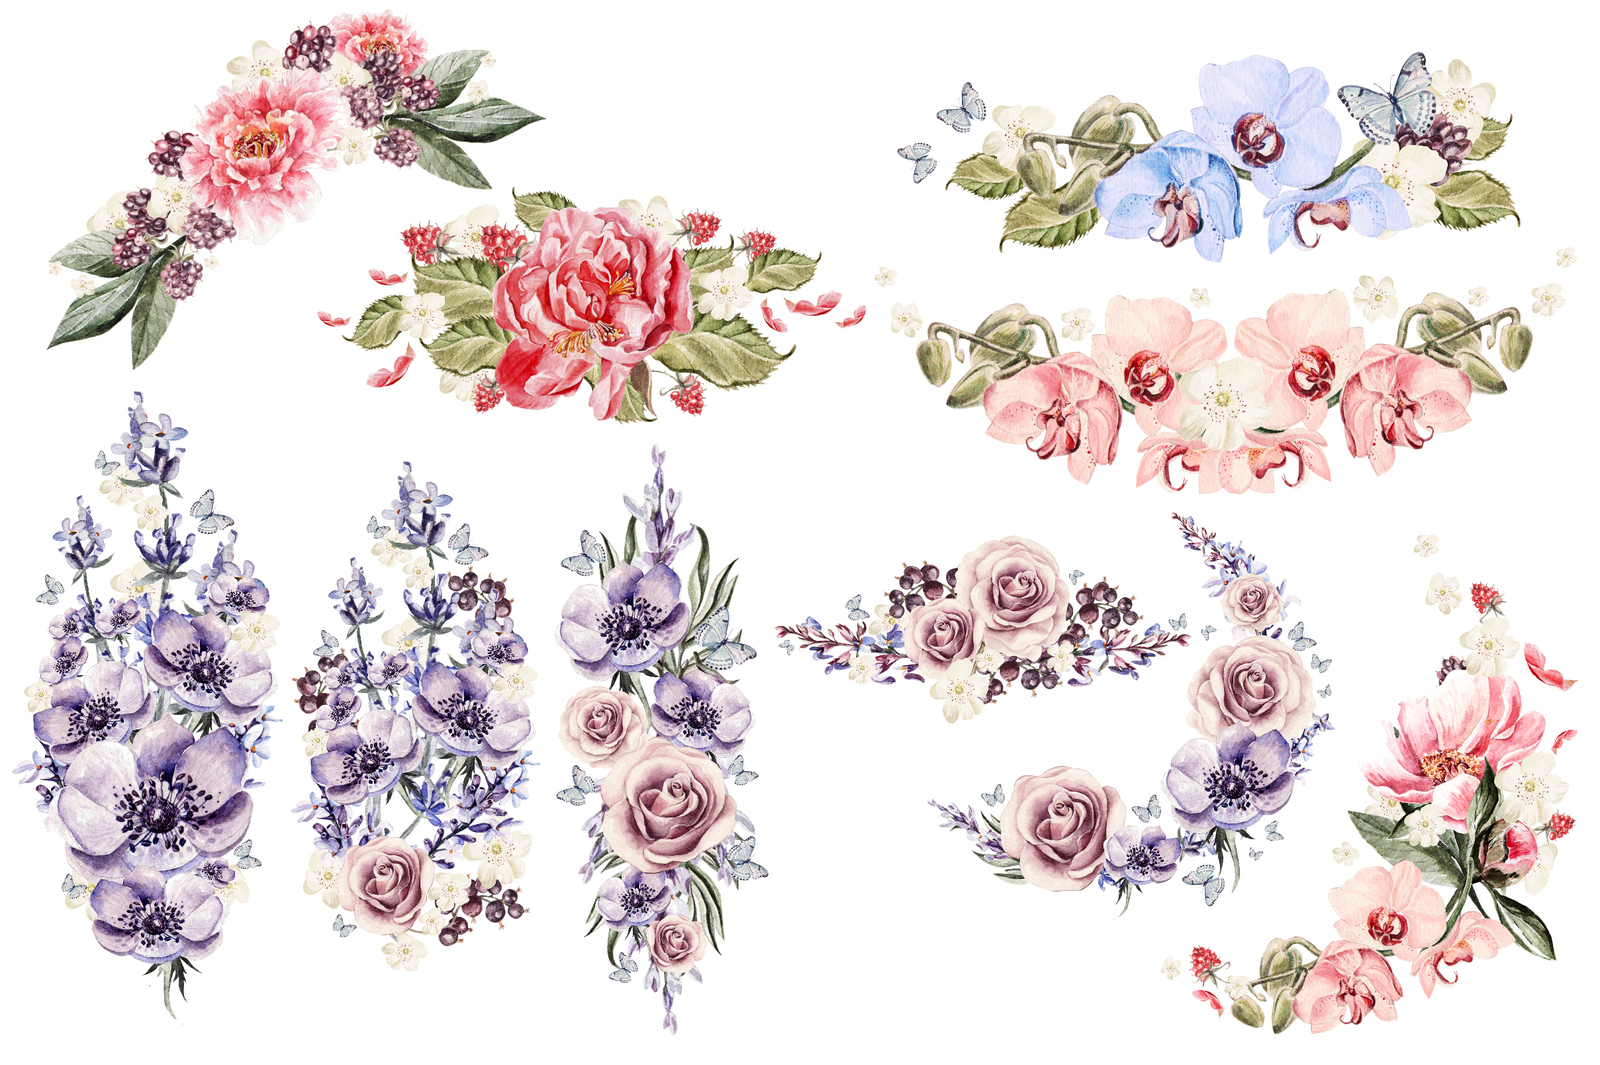 watercolor ELEMENTS and WREATH